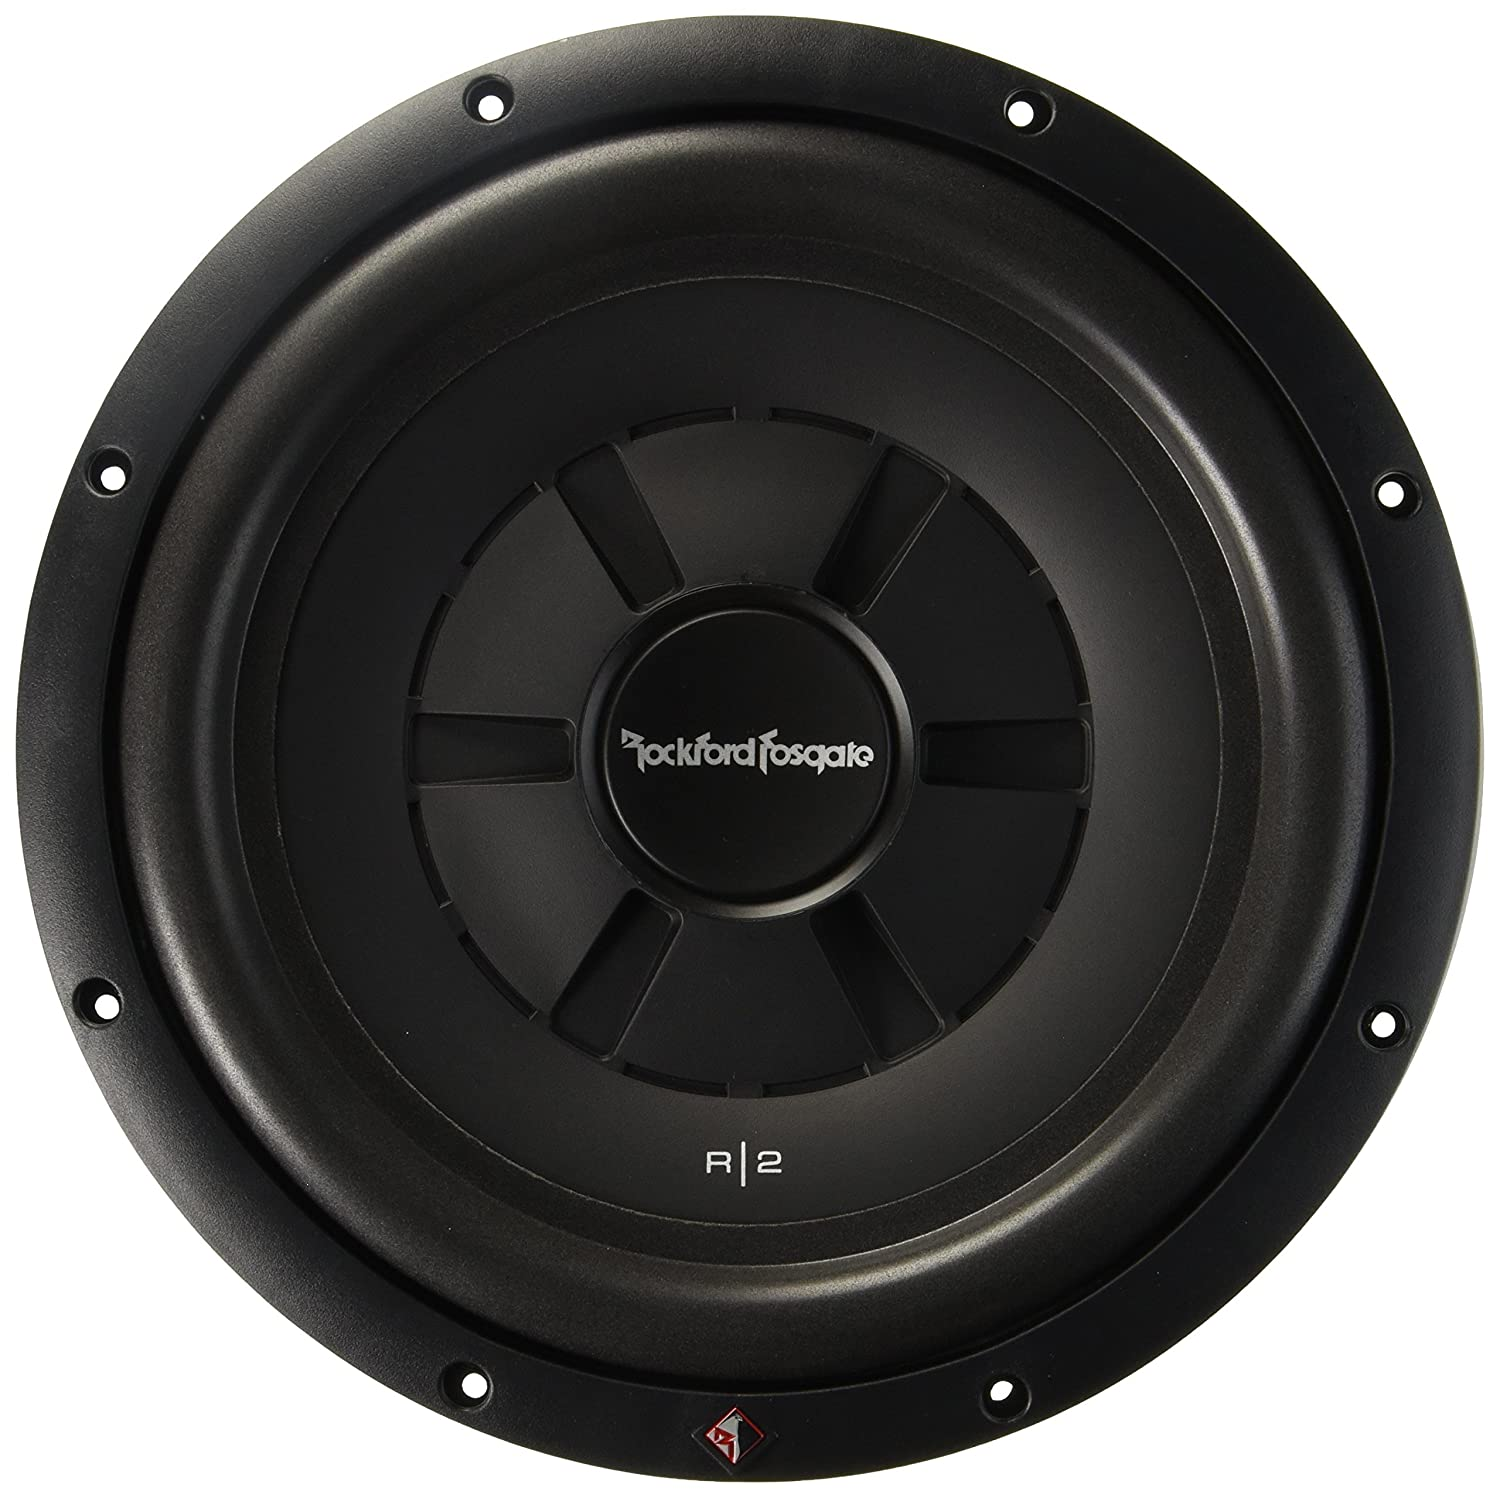 Best Rockford Fosgate Subwoofers